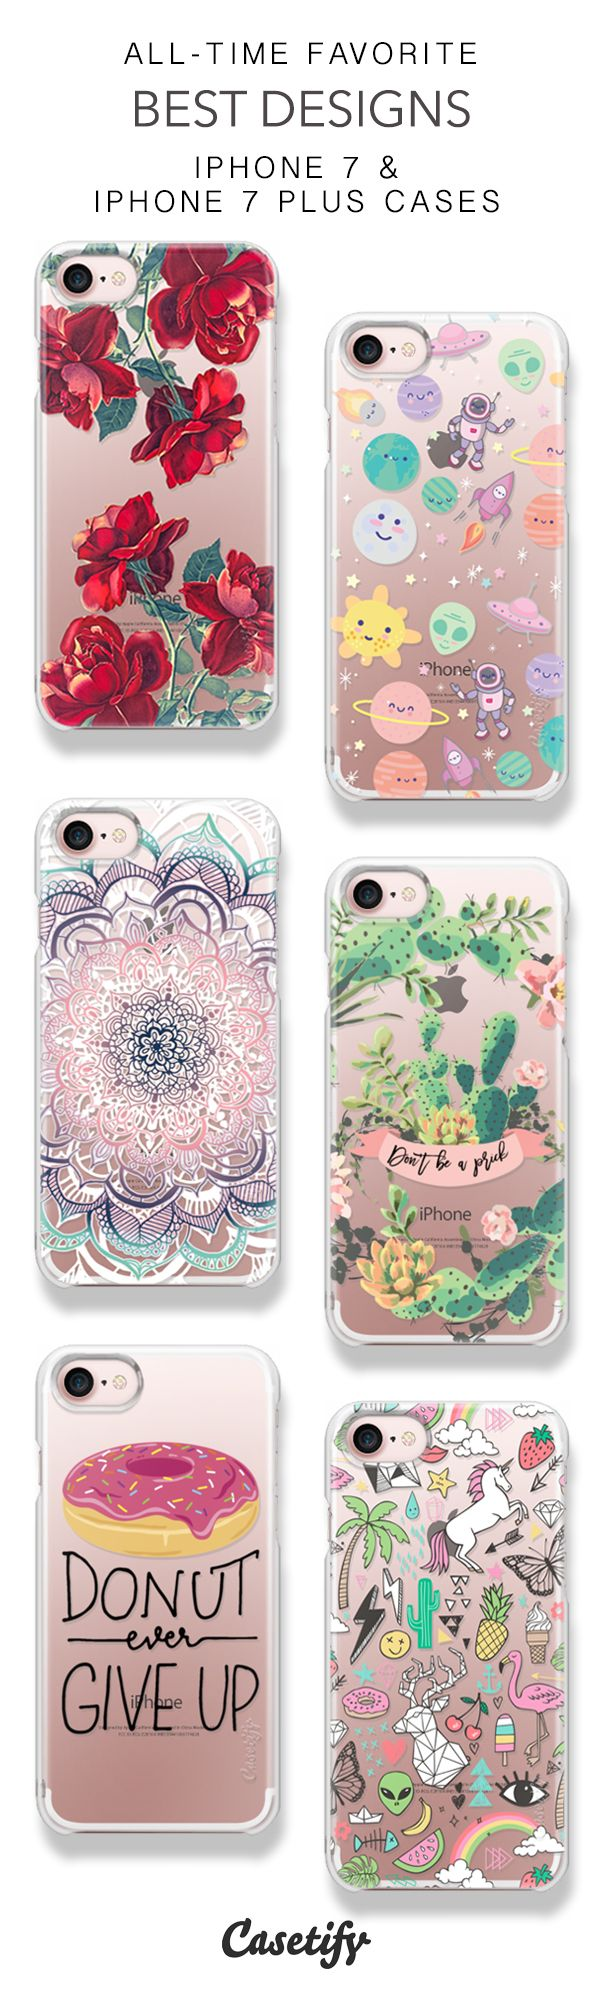 All Time Favorite Best Designs Protective iPhone 7 Cases and iPhone 7 Plus Cases. More Print iPhone case here > www.casetify.com/... Cell Phone, Cases & Covers... http://www.ebay.com/sch/i.html?_from=R40&_trksid=p4712.m570.l1313.TR10.TRC0.A0.H1.Xcell+phone+cases+and+covers.TRS0&_nkw=cell+phone+cases+and+covers&_sacat=0